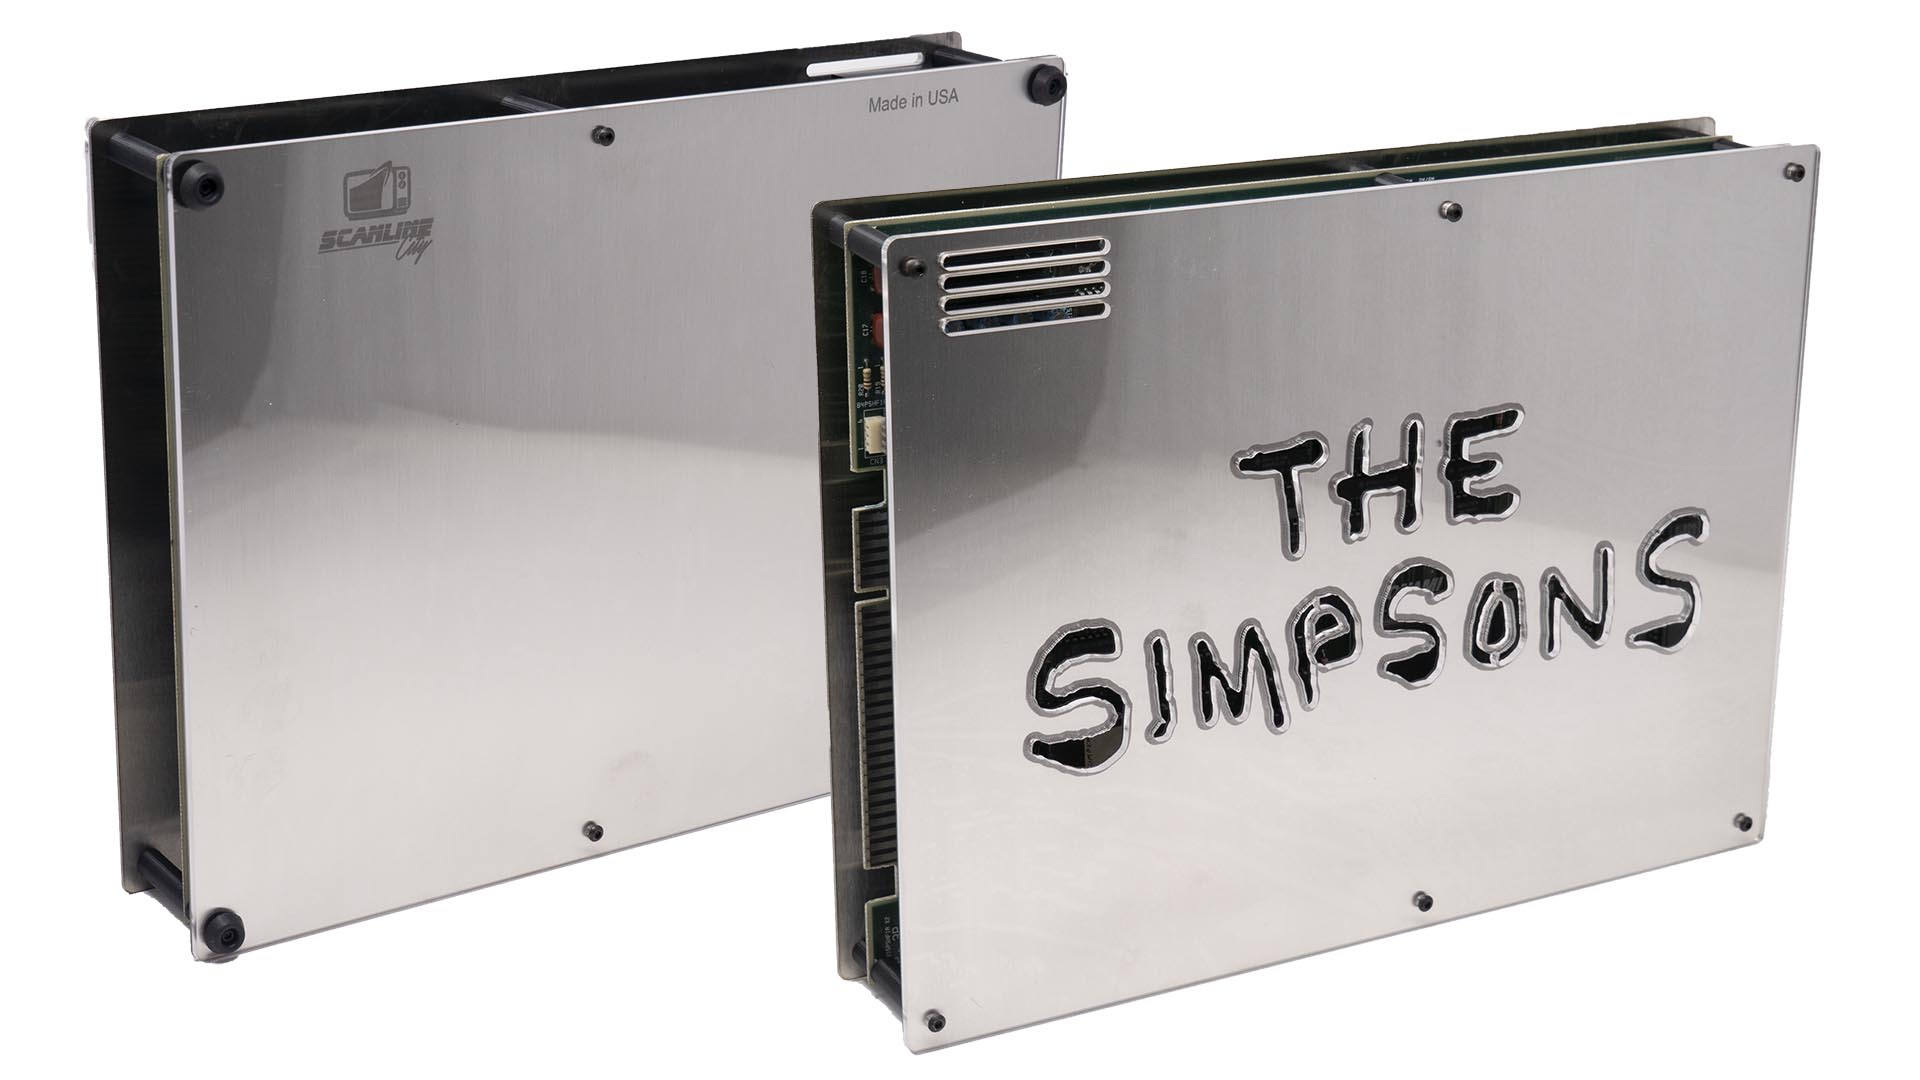 New Metal + Plexi Cases from Scanline City